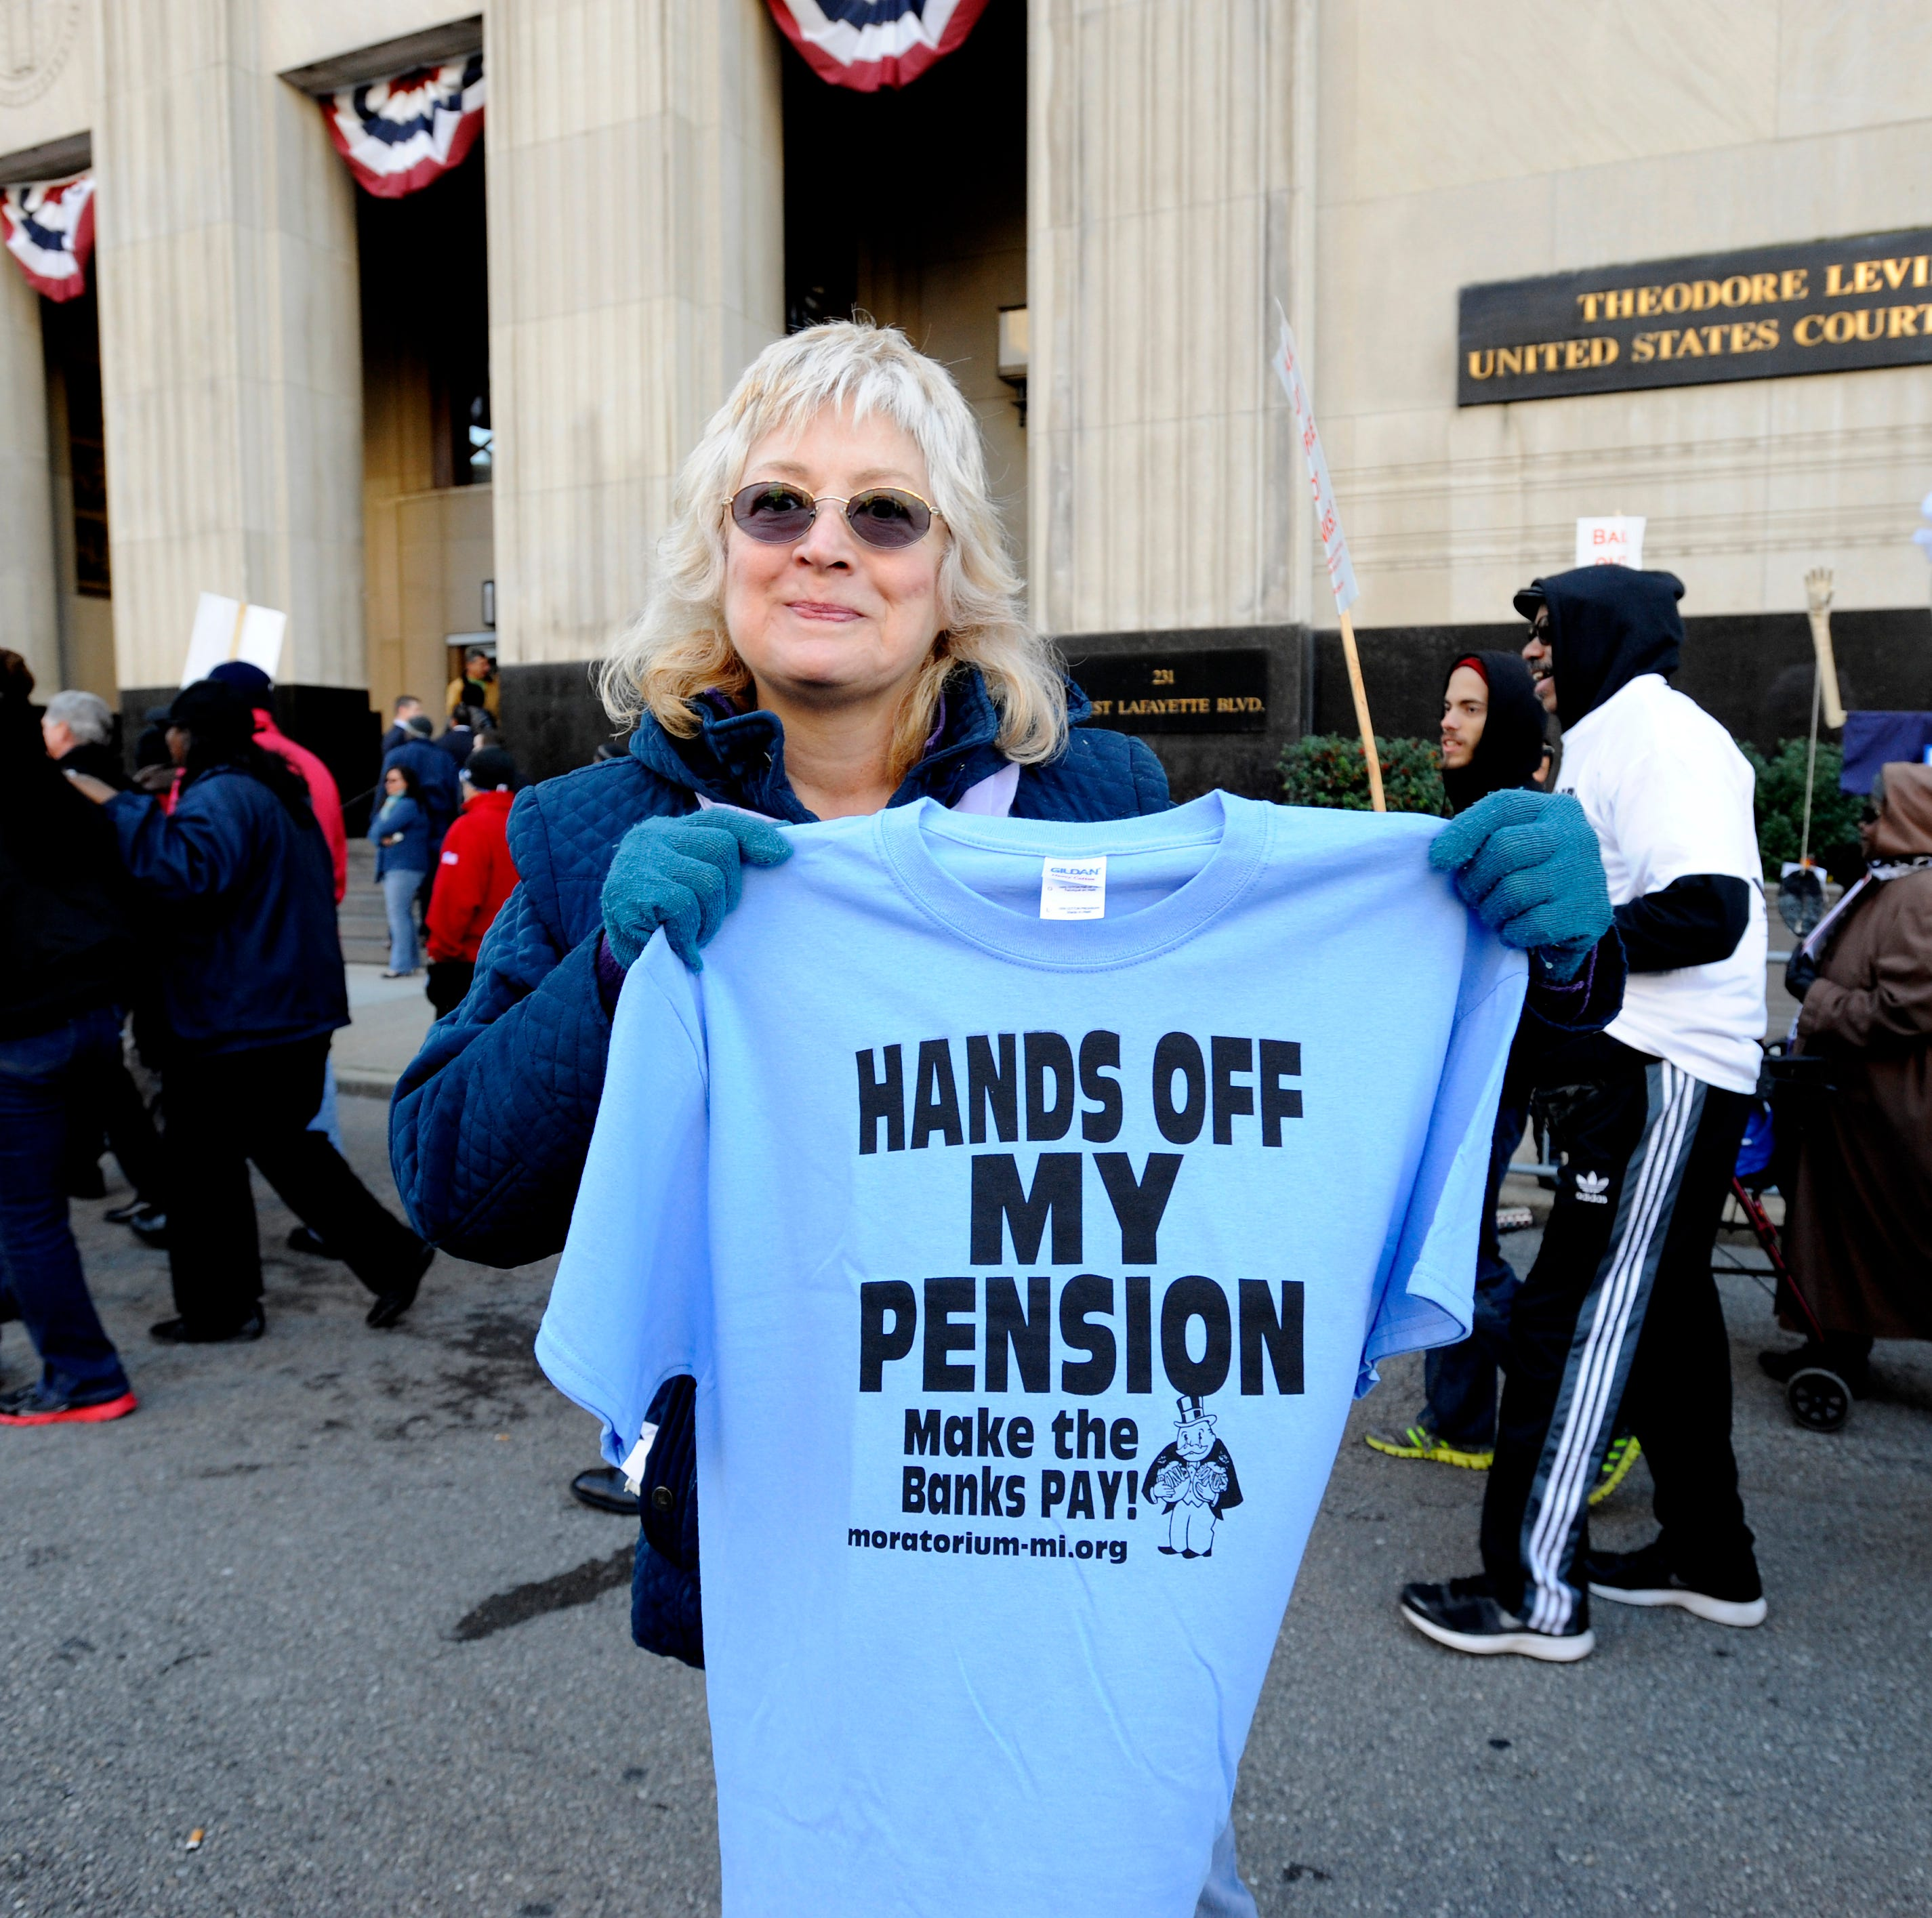 Opinion: Repeal Michigan's pension tax